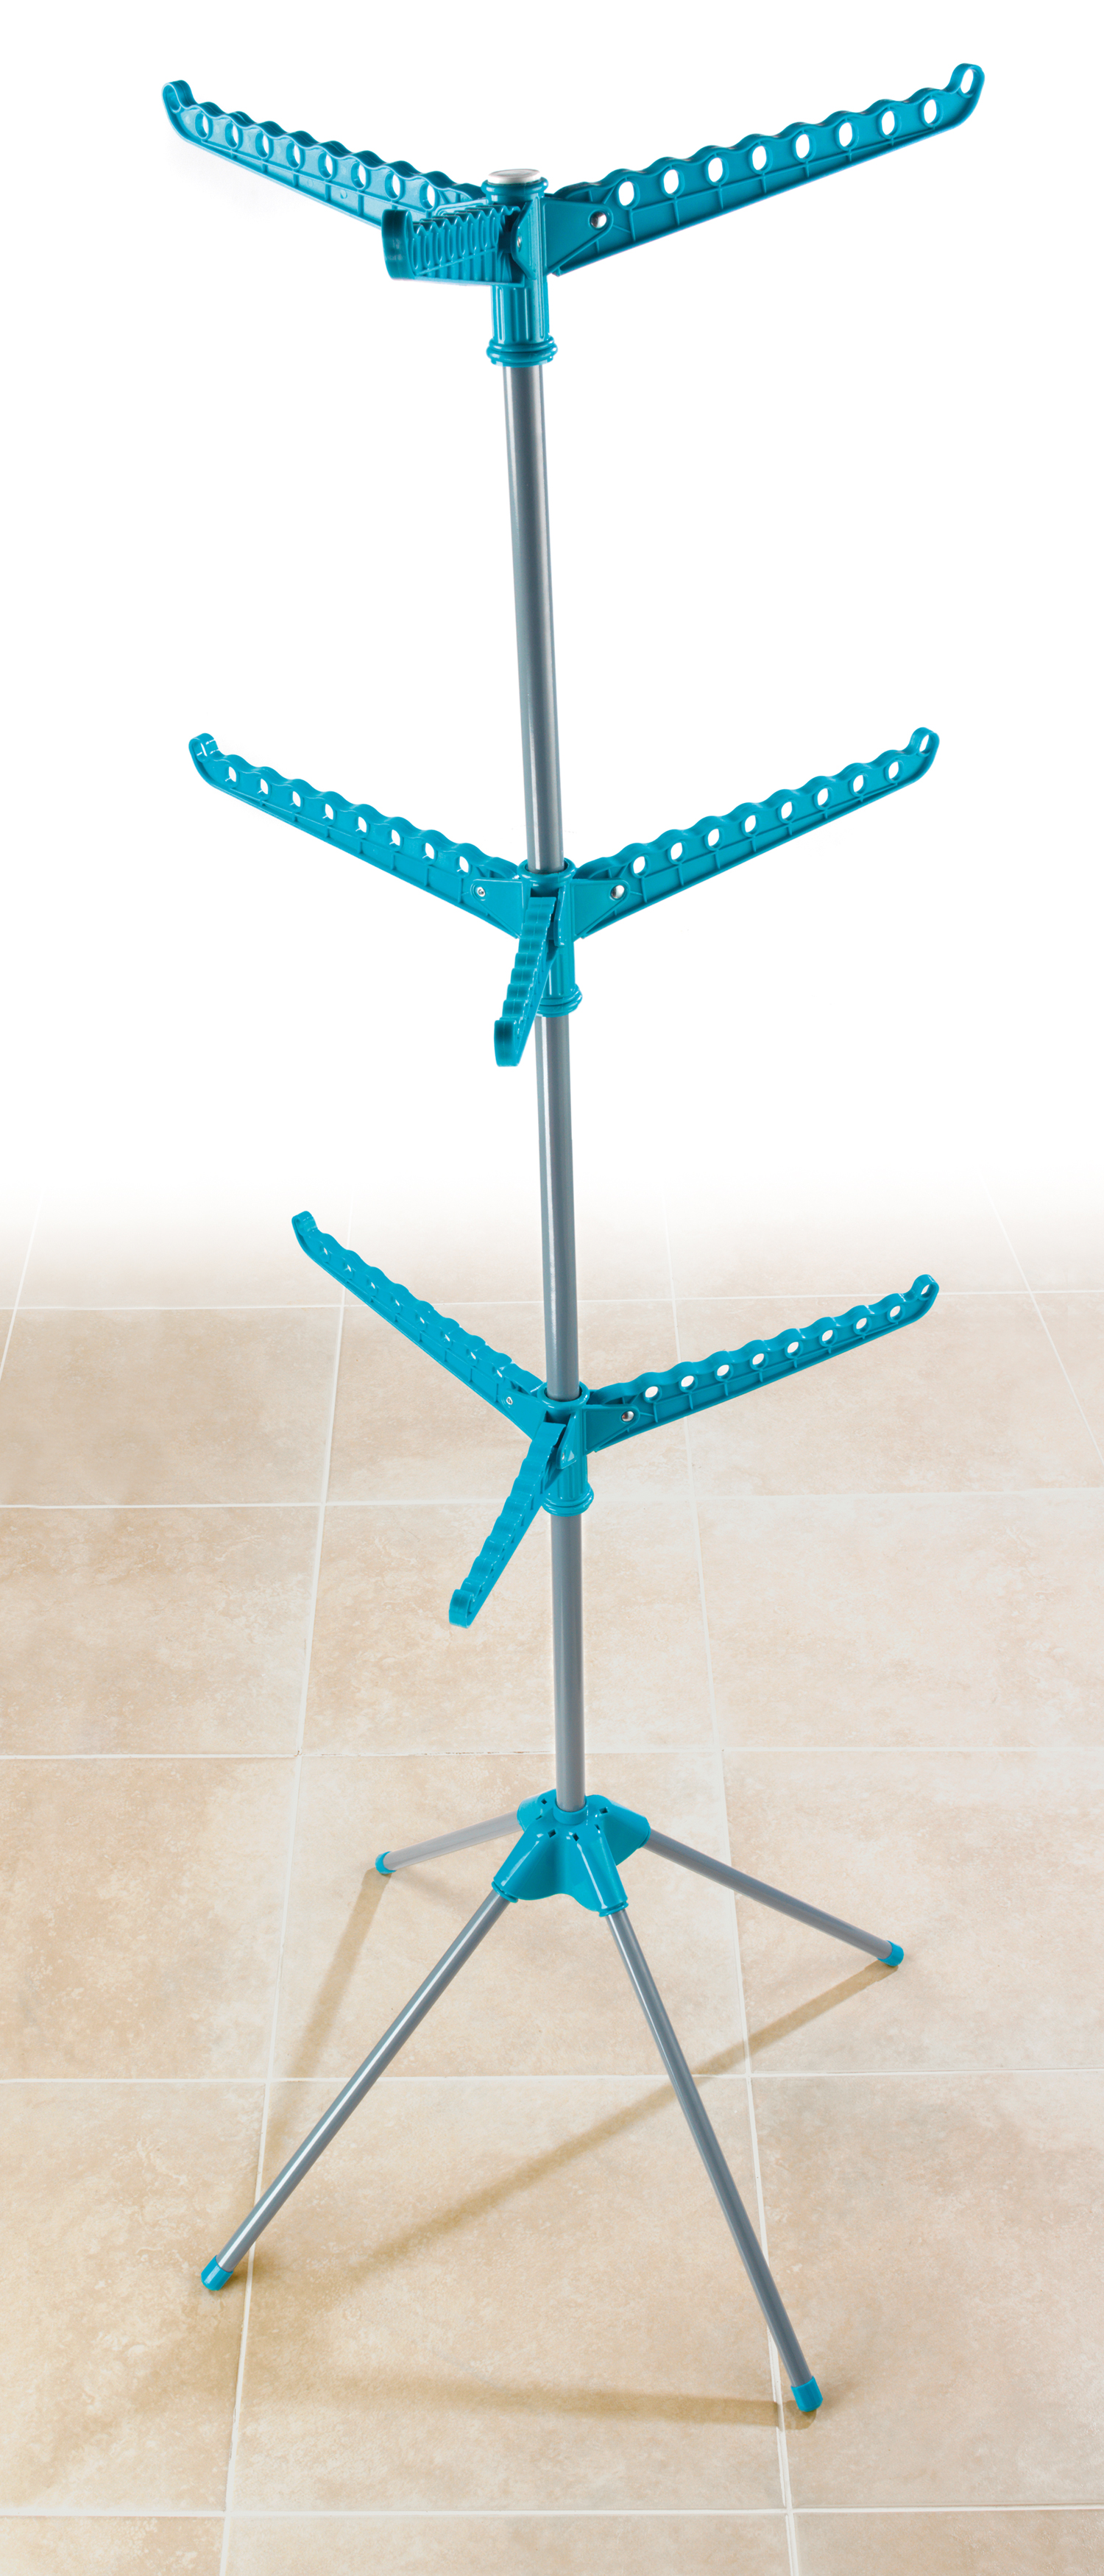 Beldray 9 Arm Clothes Airer Dryer Turquoise Beldray